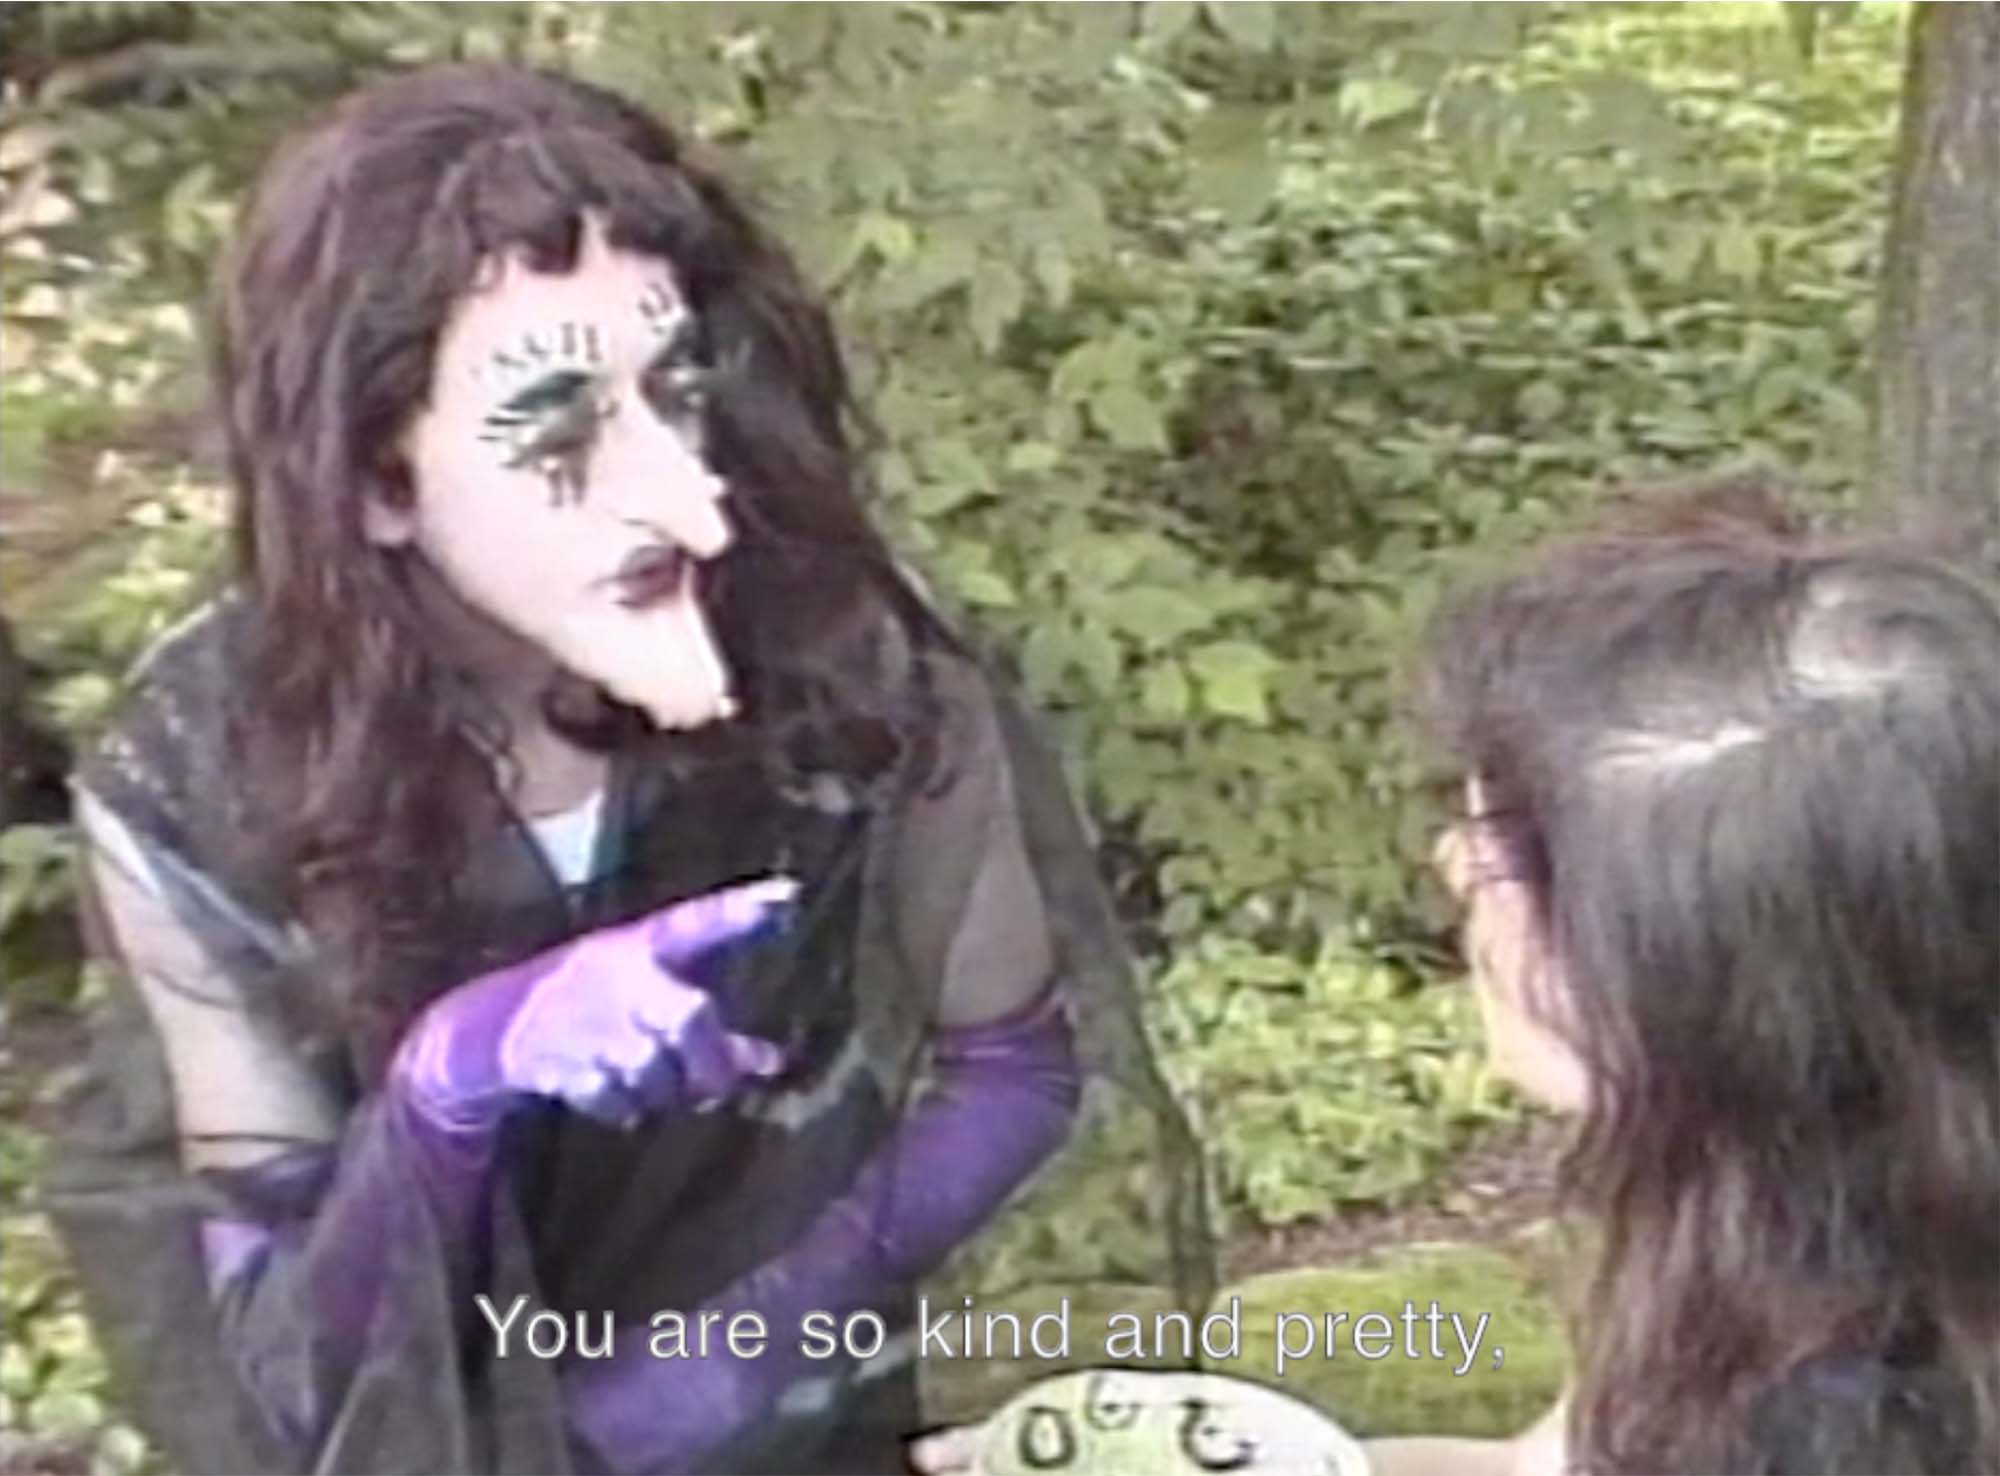 """Tom Rubnitz, """"The Fairies"""" (1989). Image copyright of the artist, courtesy of Video Data Bank, www.vdb.org, School of the Art Institute of Chicago"""